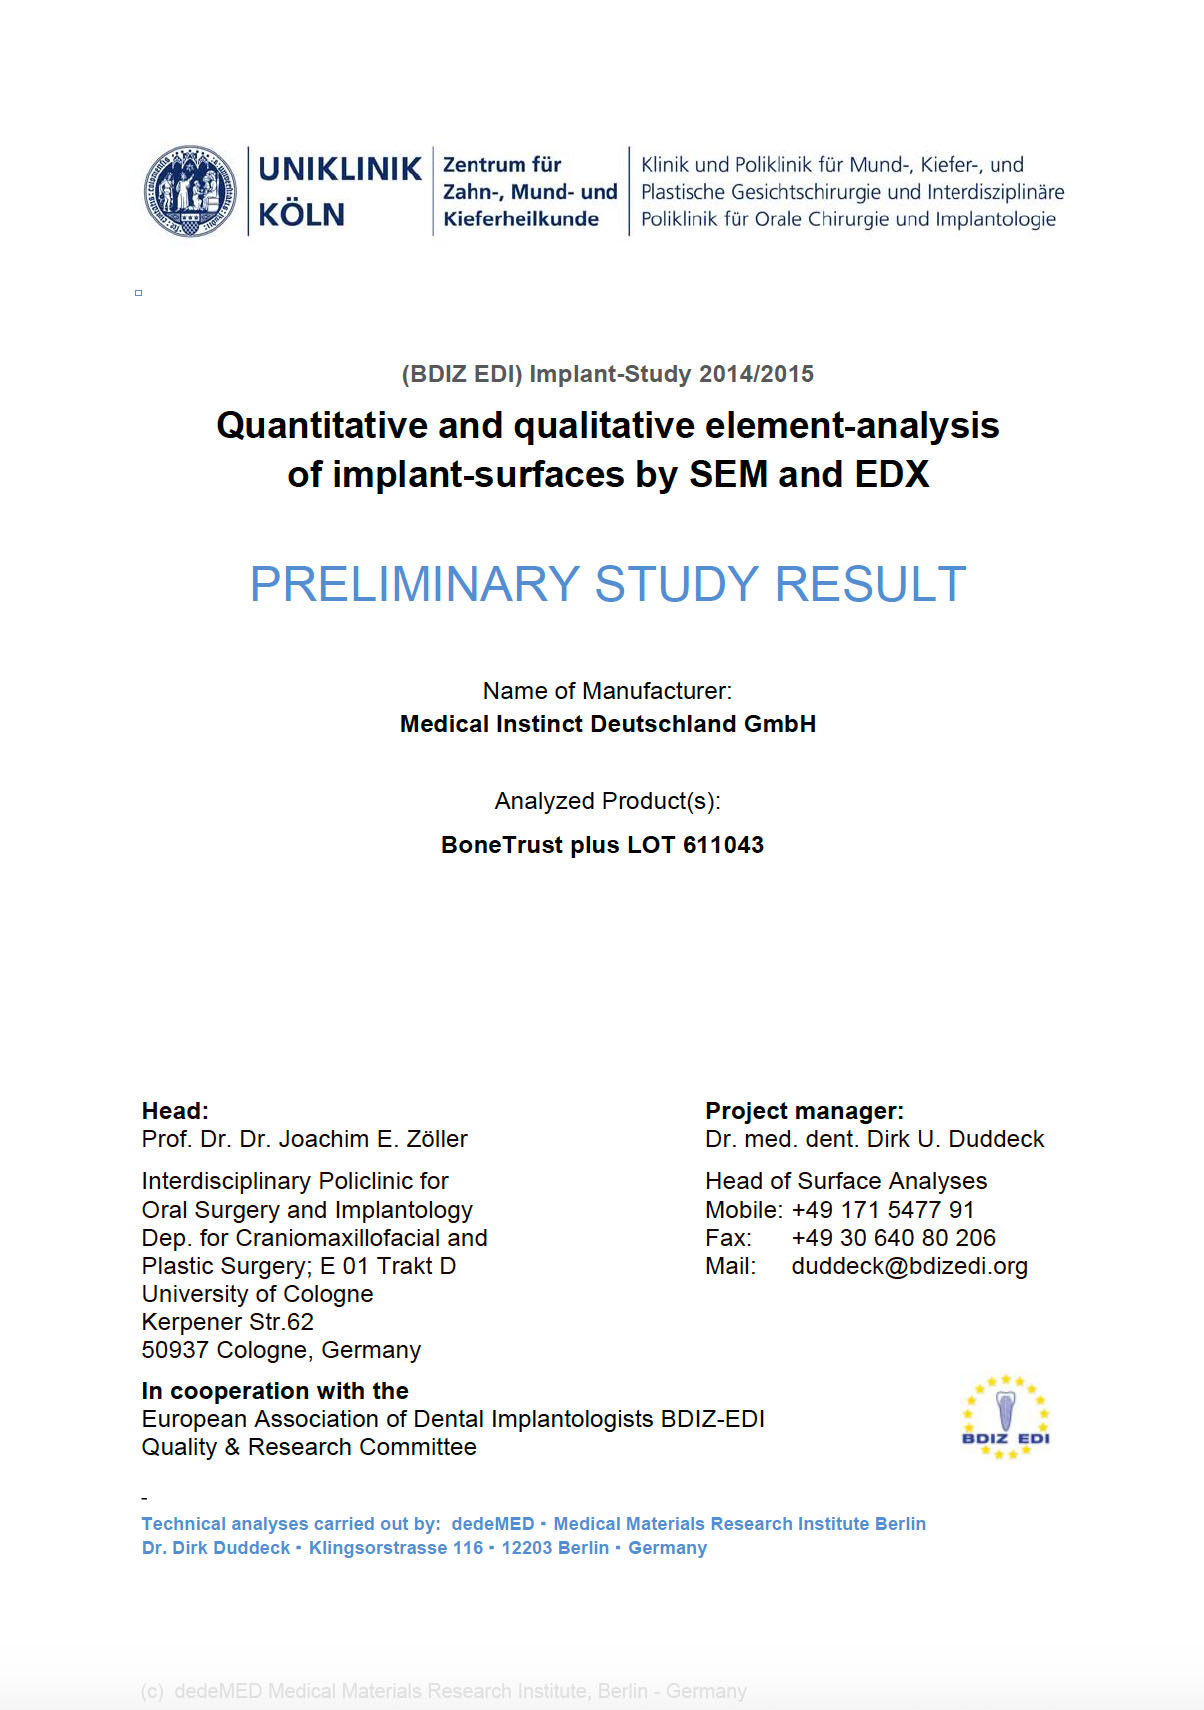 Quantitative And Qualitative Element Analysis Of Implant Surfaces By SEM And EDX